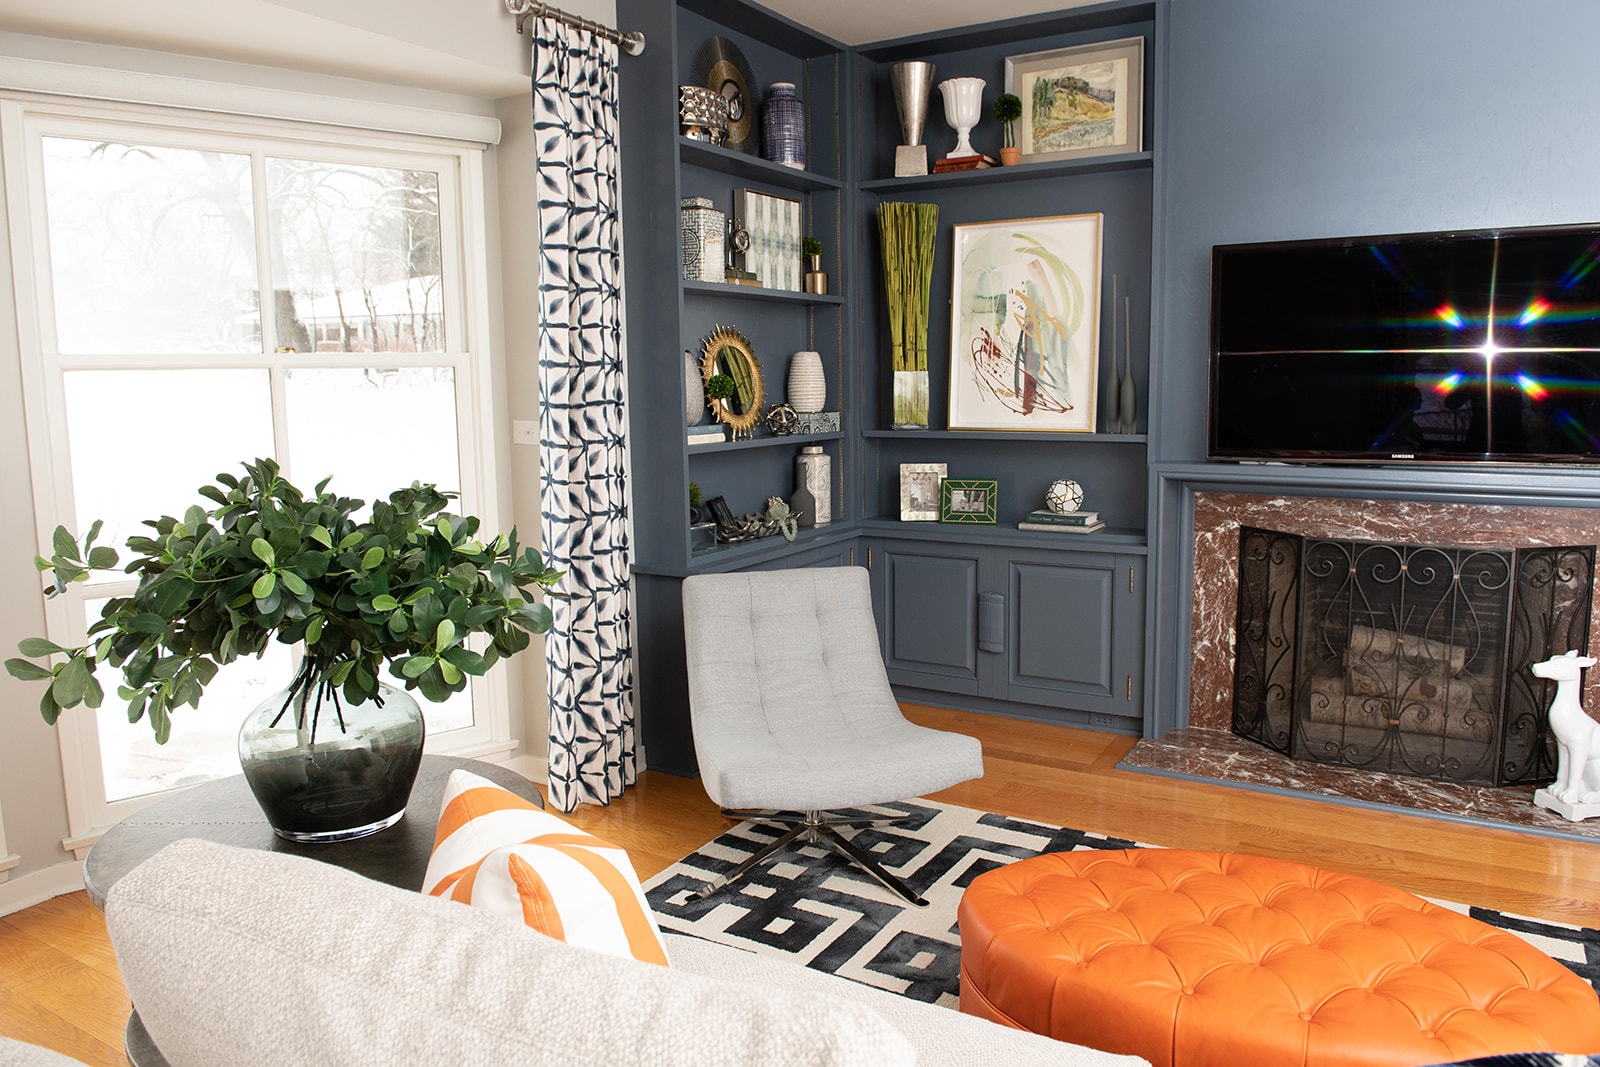 White paint of the windows, a light grey for the walls and a cool, dark blue for the built-ins made the space feel updated, modern and stylish.